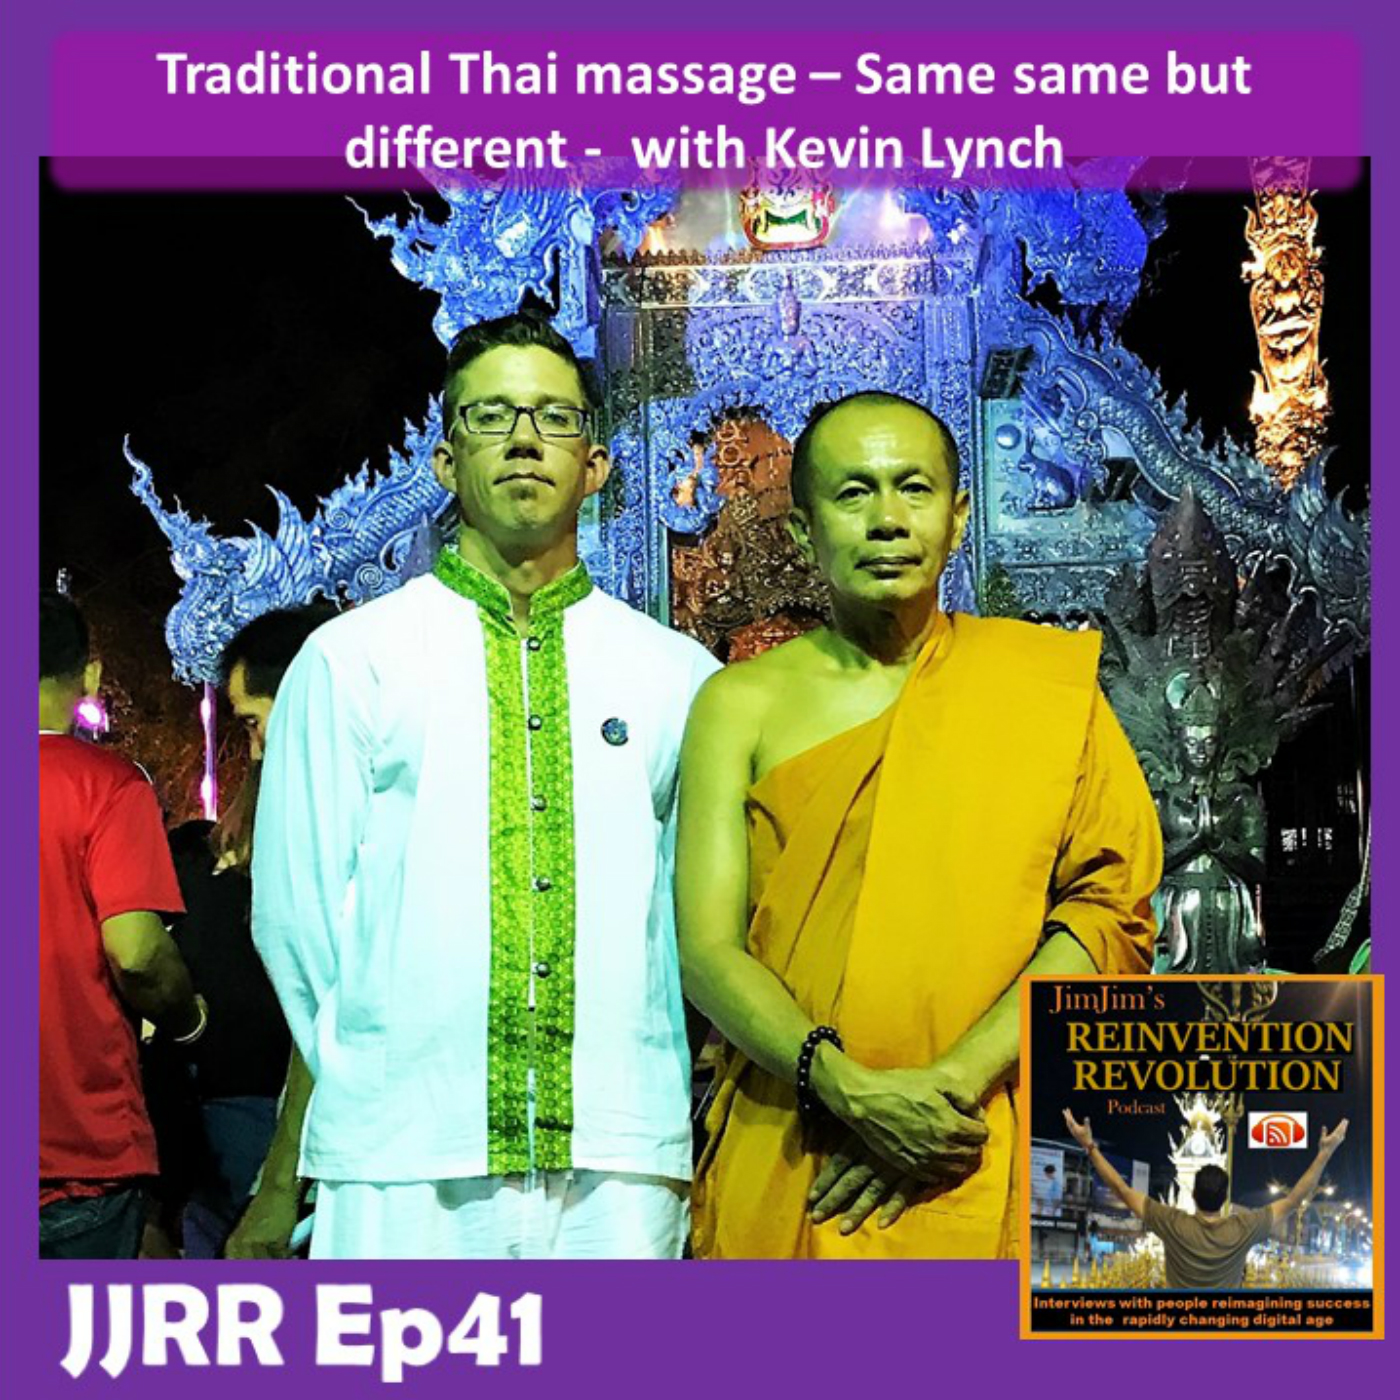 JJRR Ep41 Traditional Thai massage – Same same but different – with Kevin Lynch